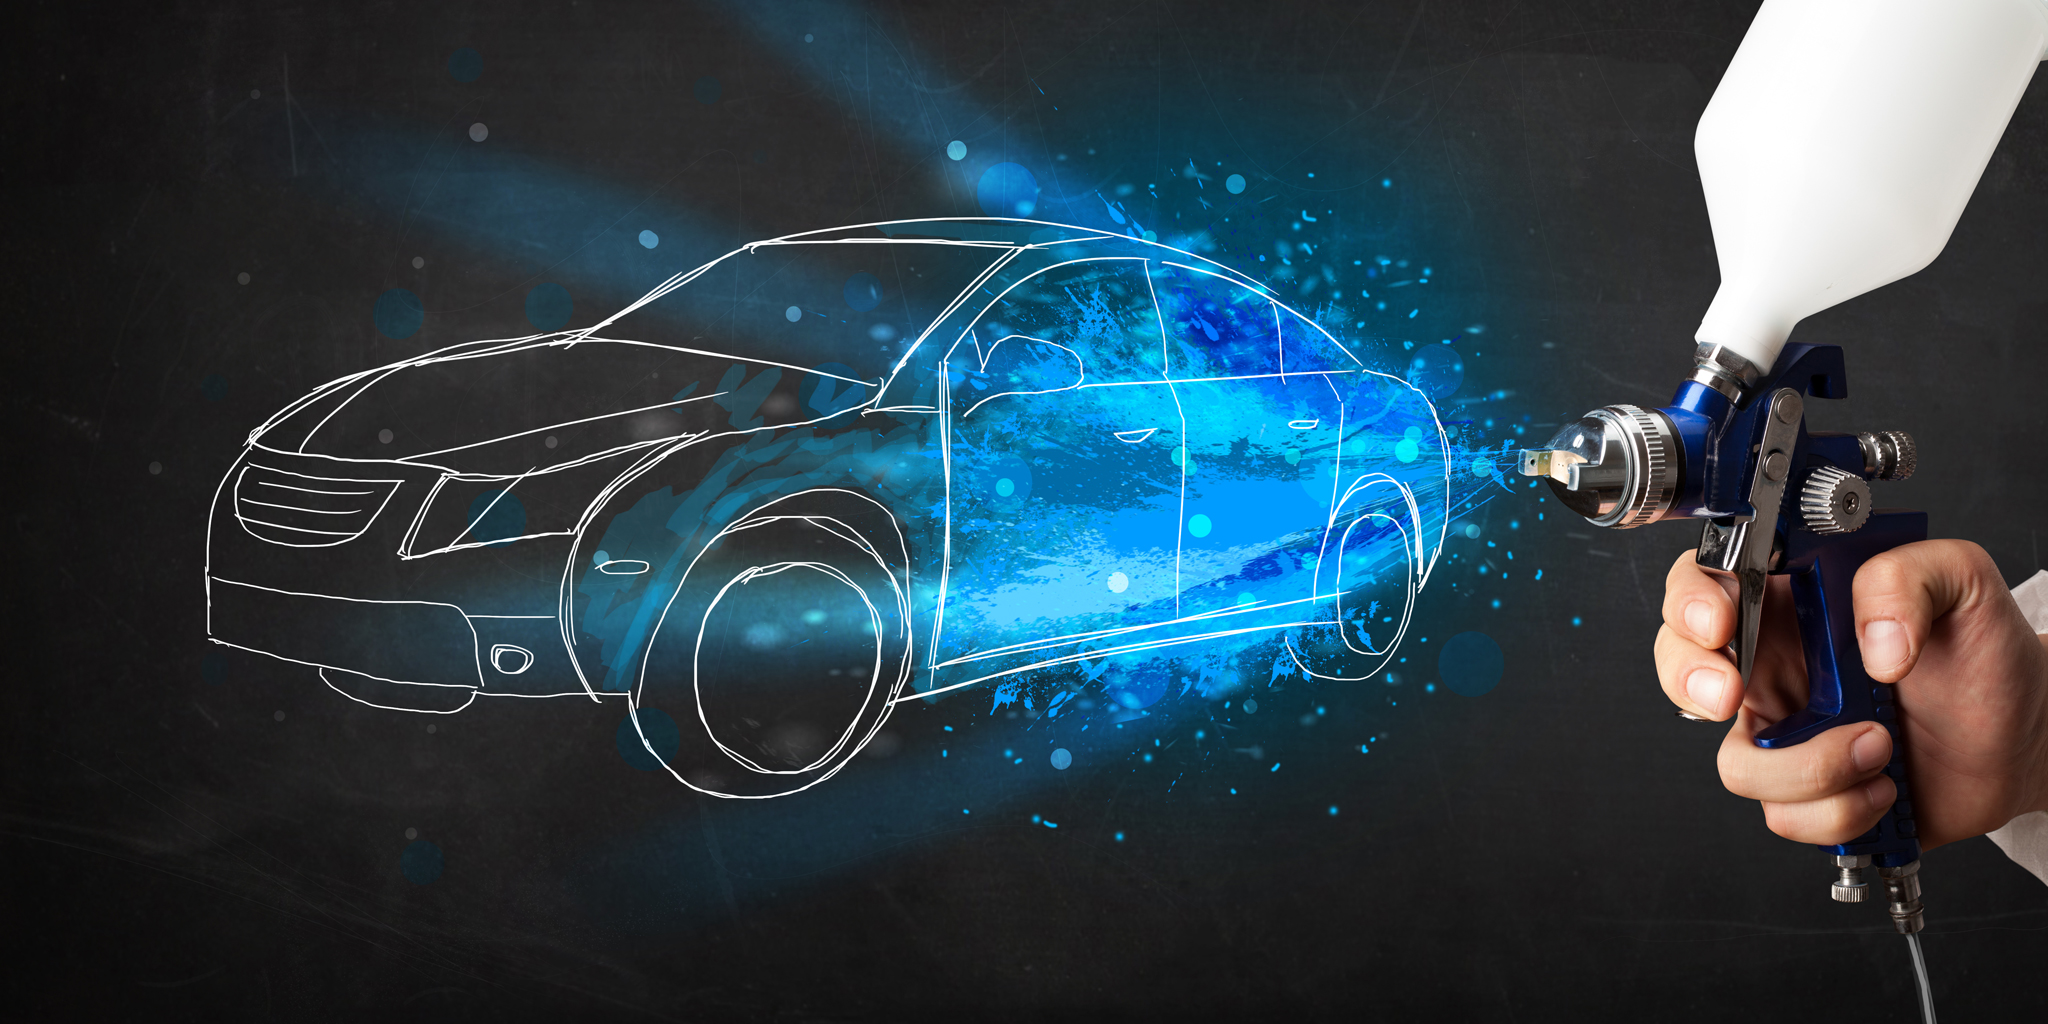 Automotive Industry Turmoil - How Chemical Players are dealing with the disruption